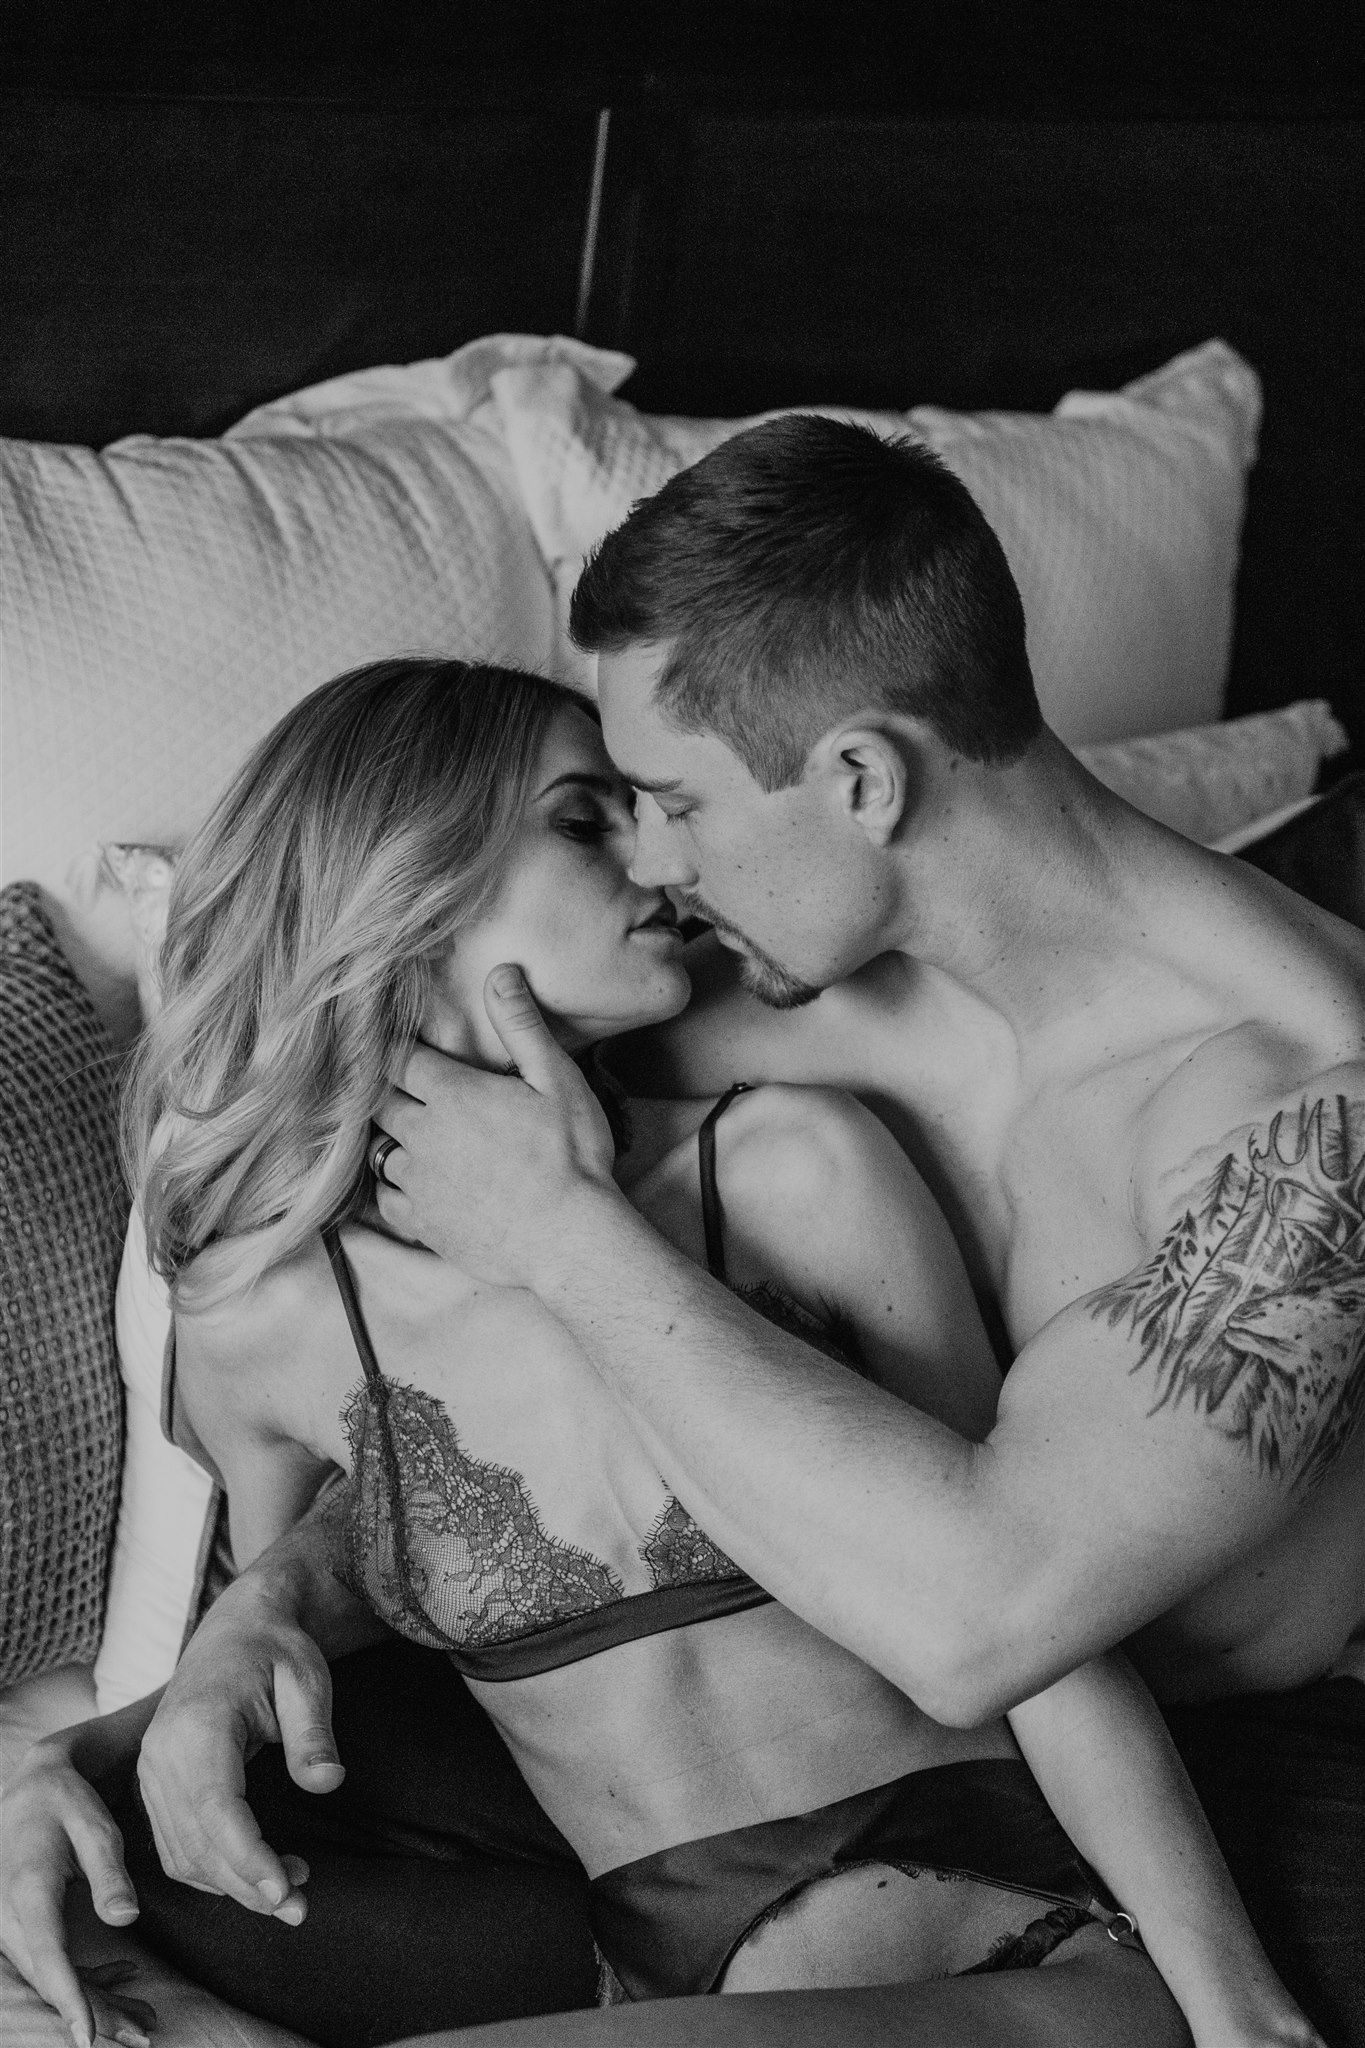 netflix and chill_couples boudoir_abigail miles photography51.jpg